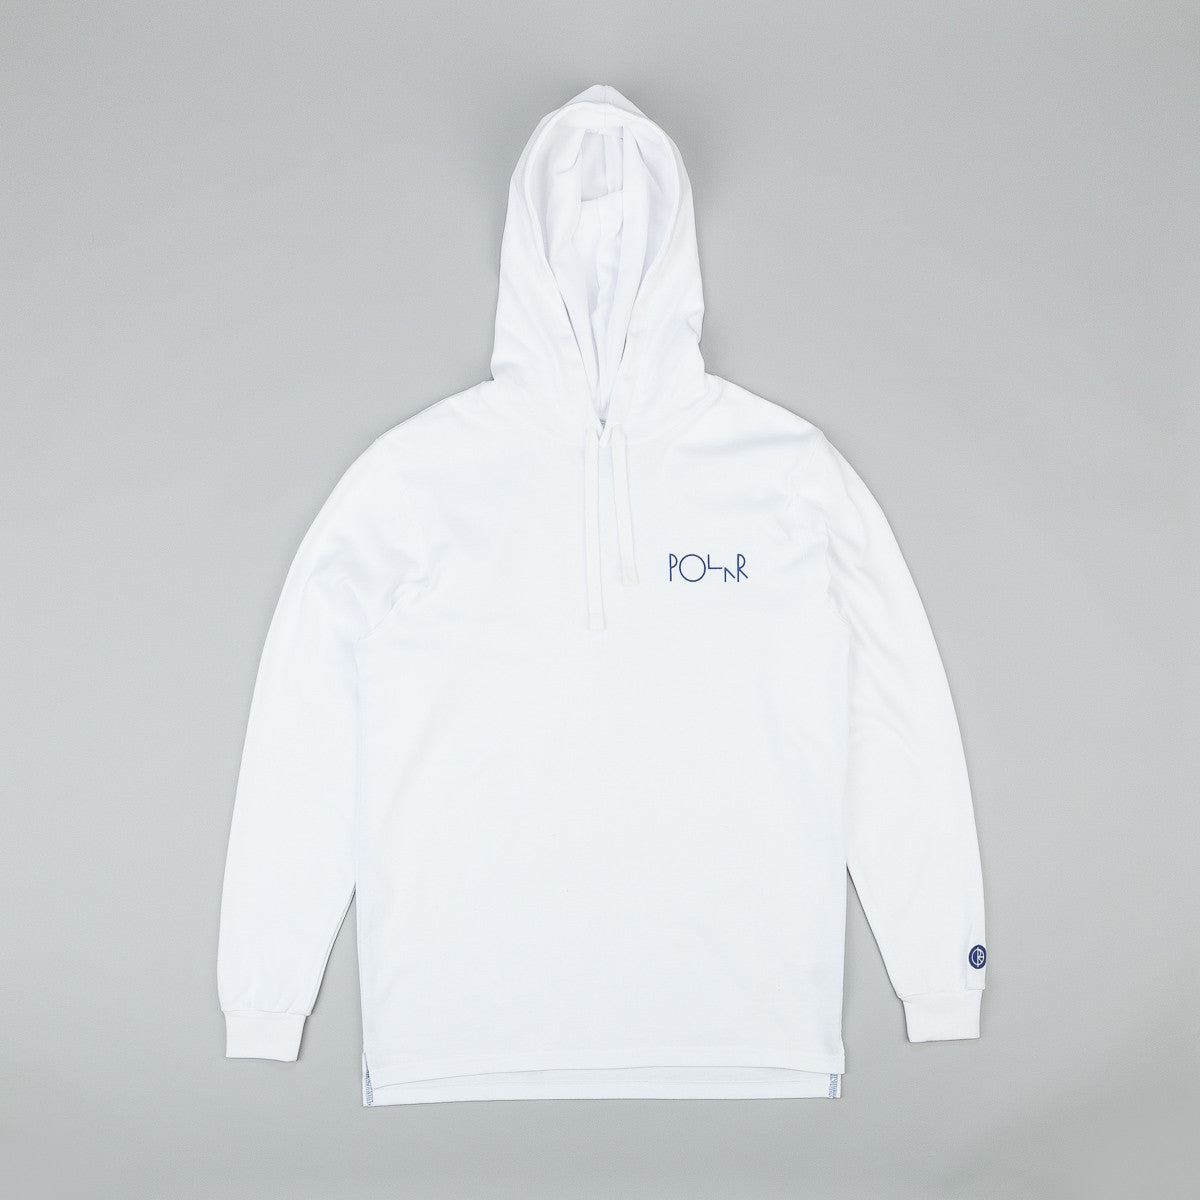 Polar Patch Hooded Sweatshirt